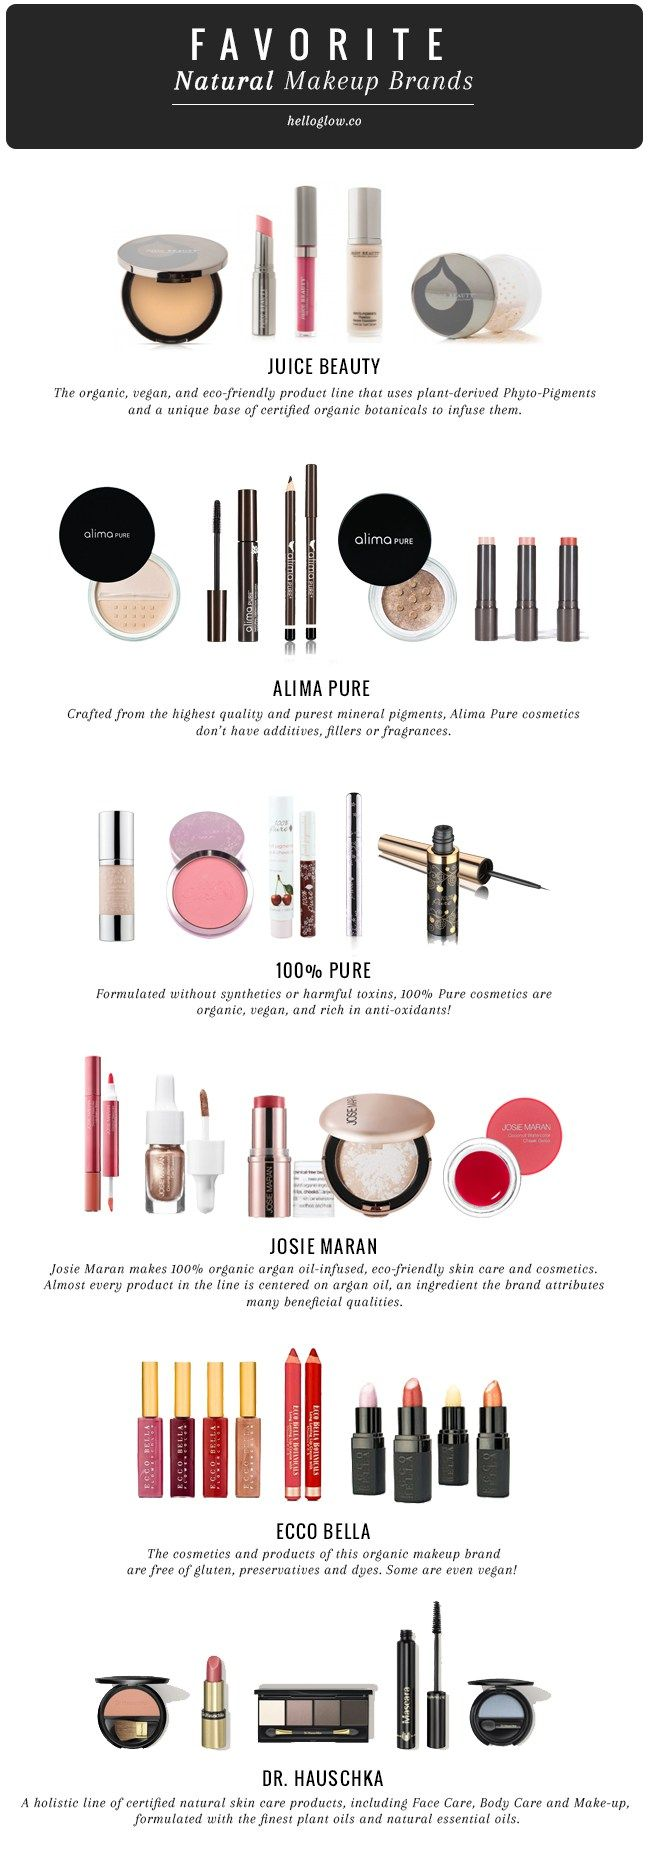 9 Favorite Natural Makeup Brands - the top 3 defiantly seem to be ok for me!